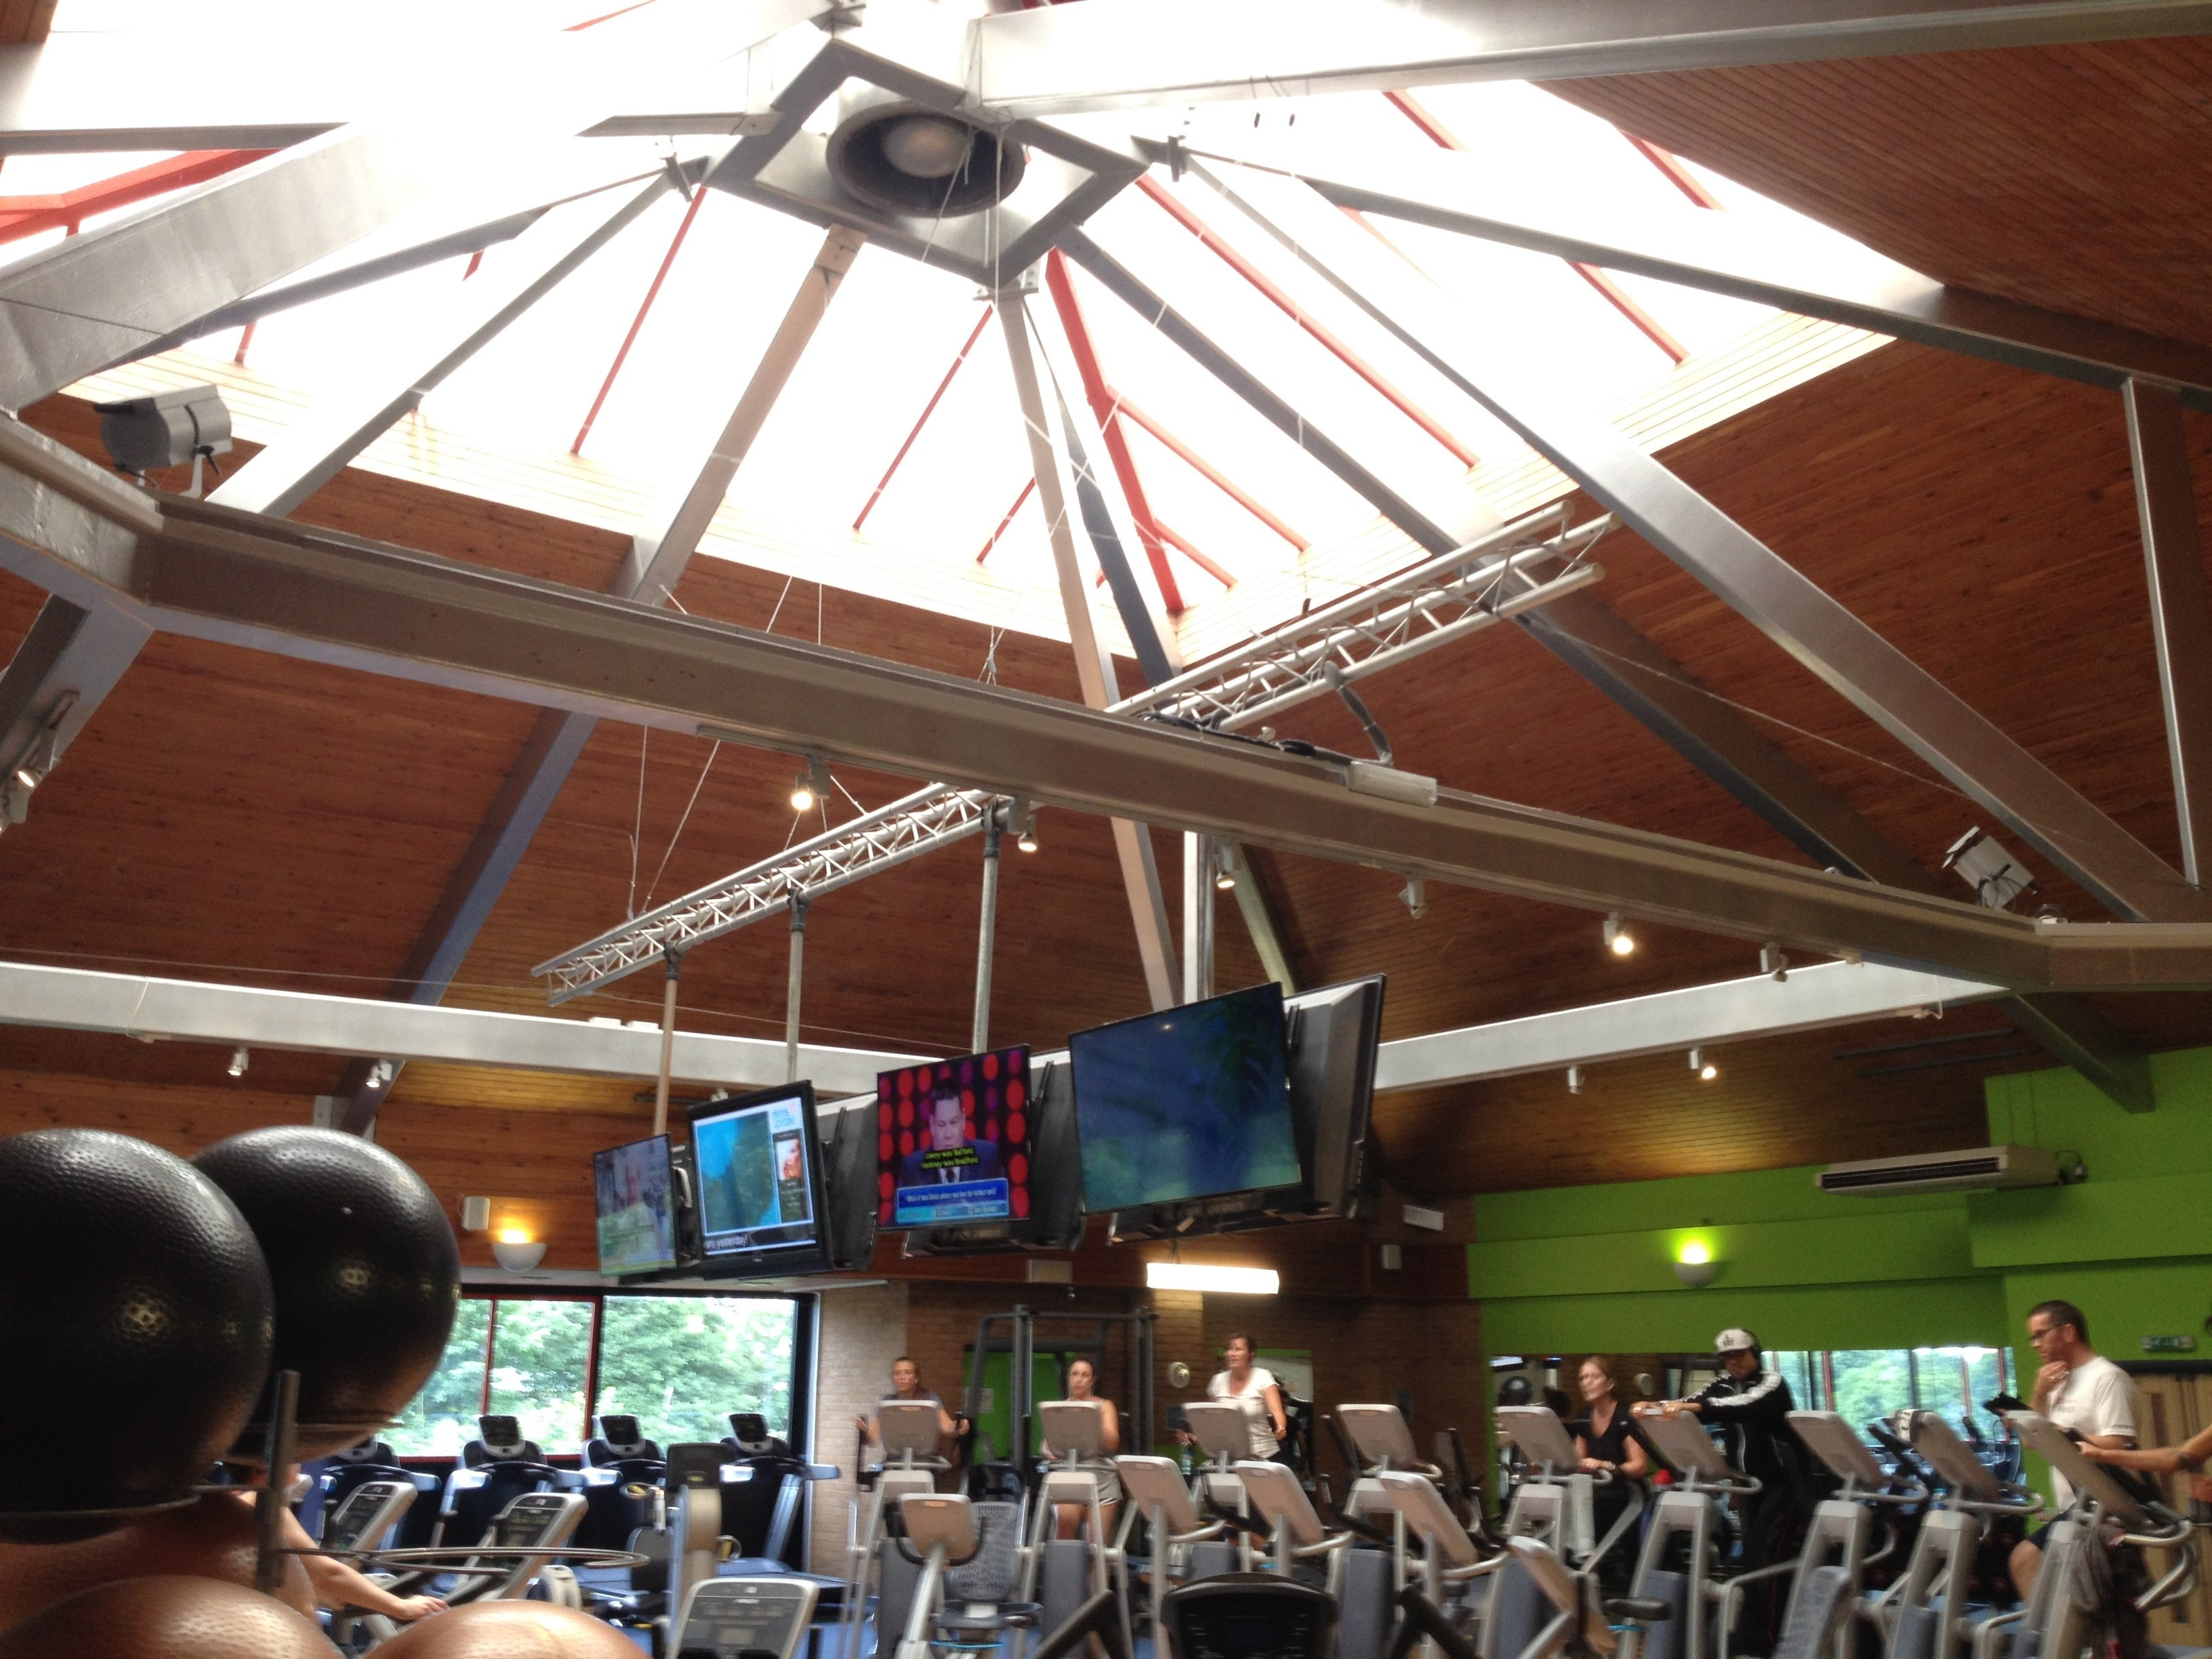 Olympiad Leisure Centre Gym Lighting